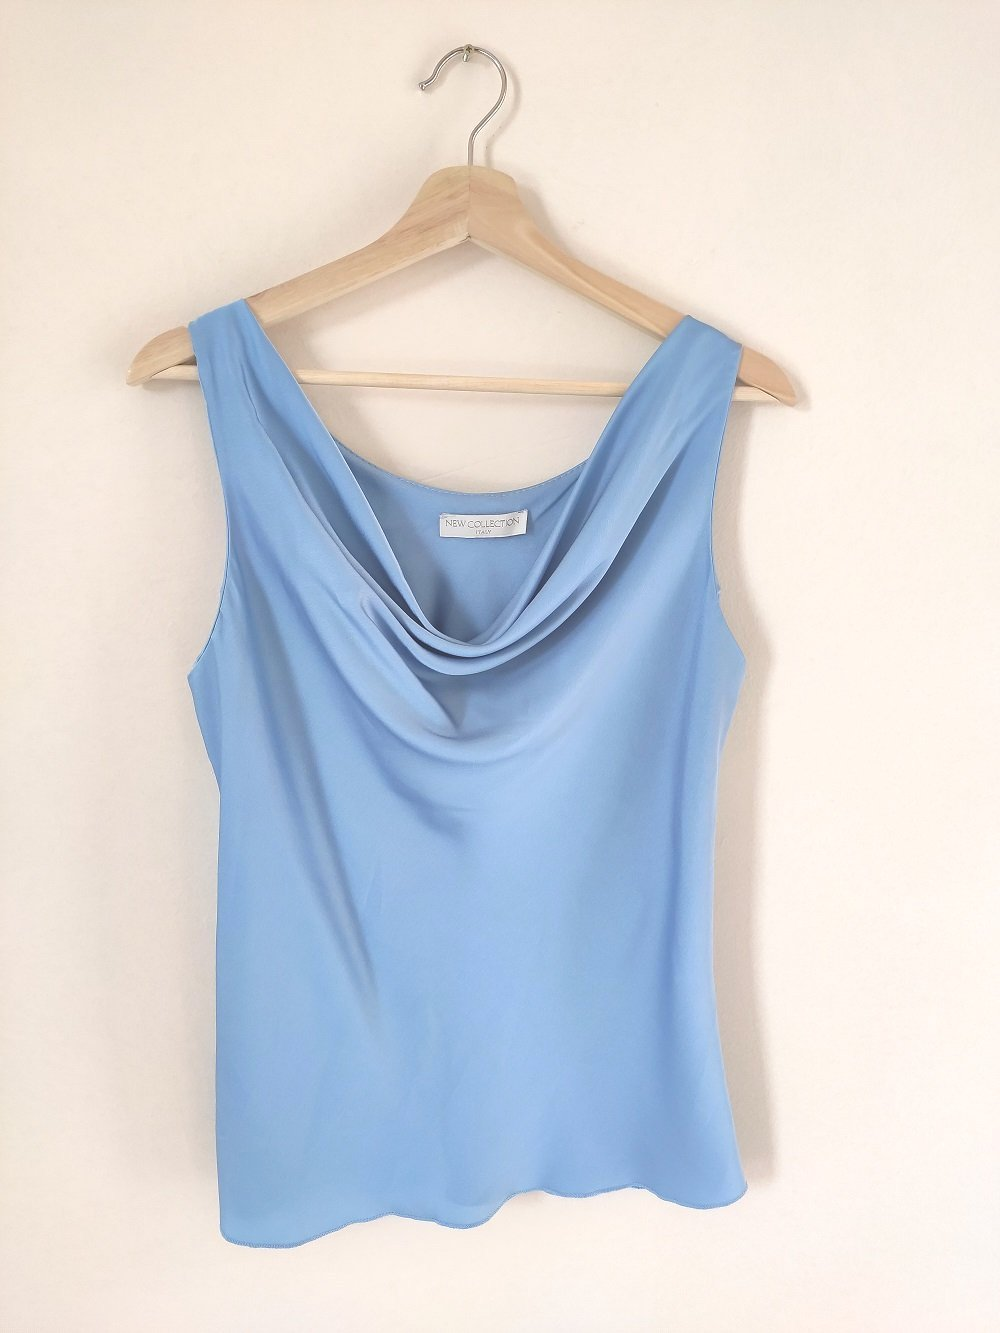 tirquoise-sleeveless-blouse-satin-front-on-a-hanger